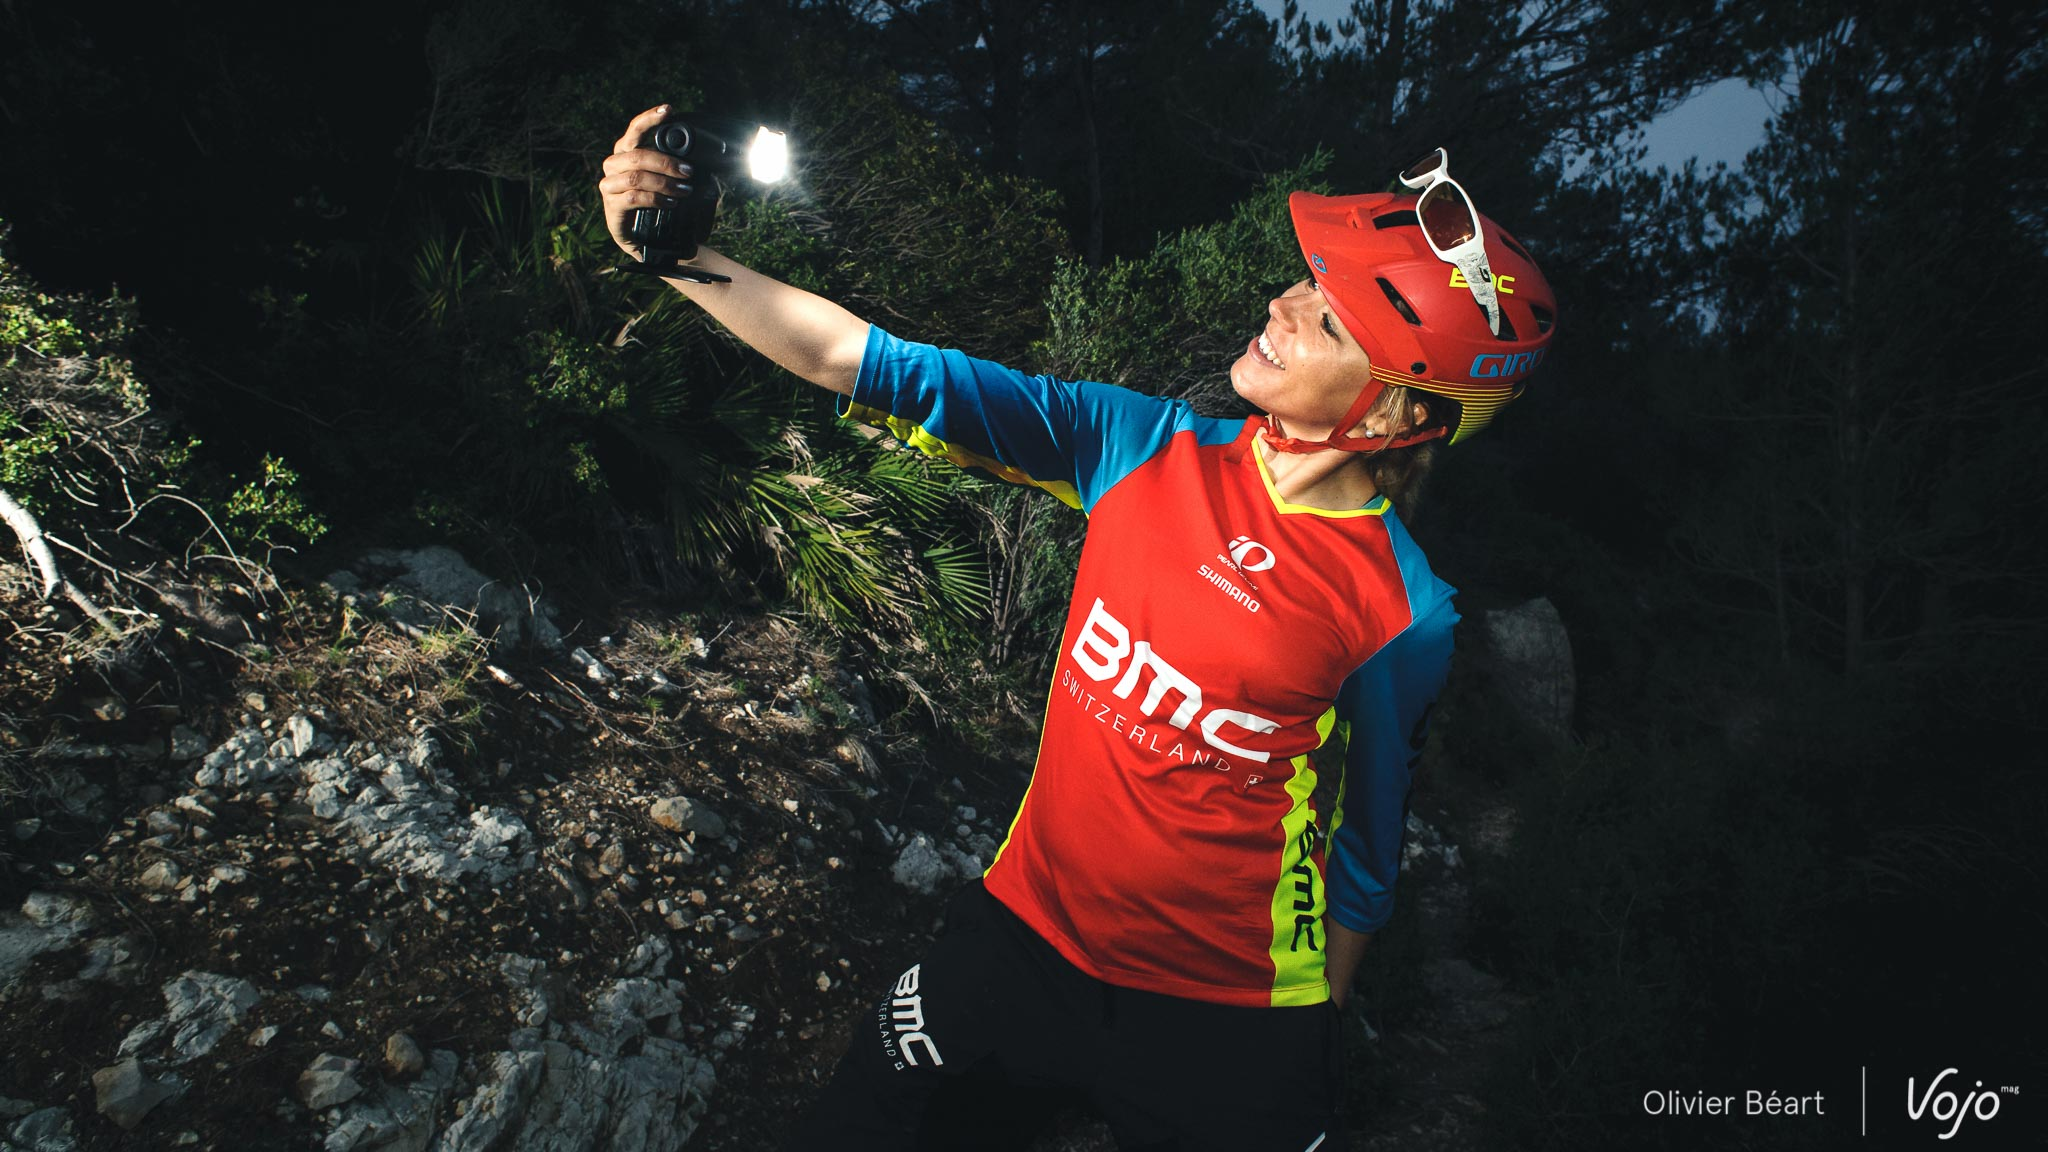 Francois_Bailly_Maitre_Interview_BMC_TrailCrew_Copyright_OBeart_VojoMag-7